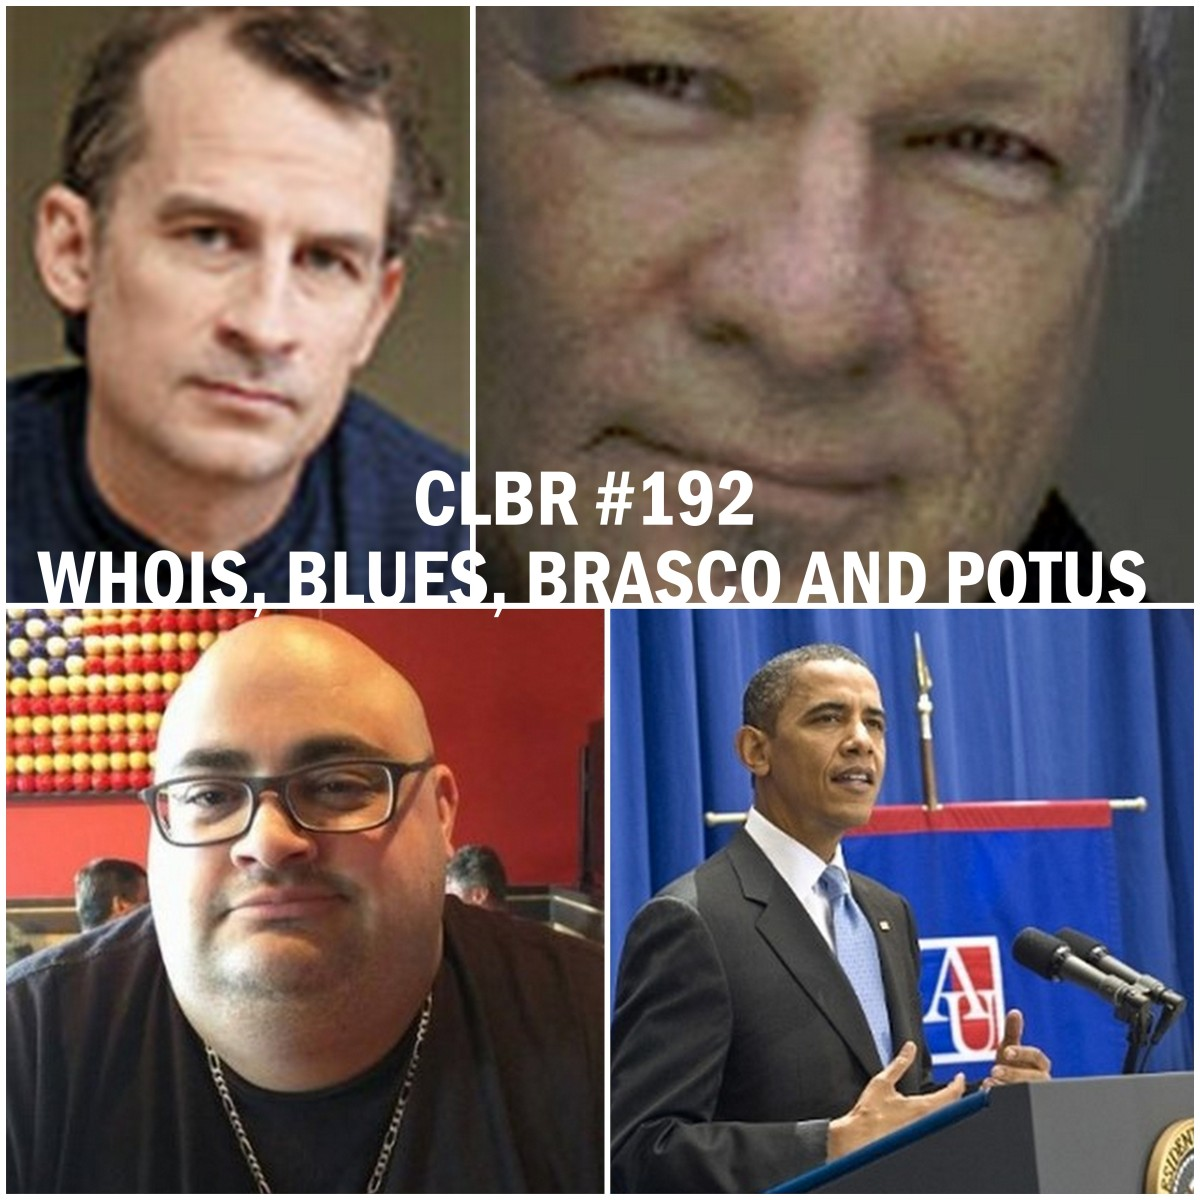 CLBR #192:  Mark Jeftovic on WhoIs Privacy and HOB Remembered